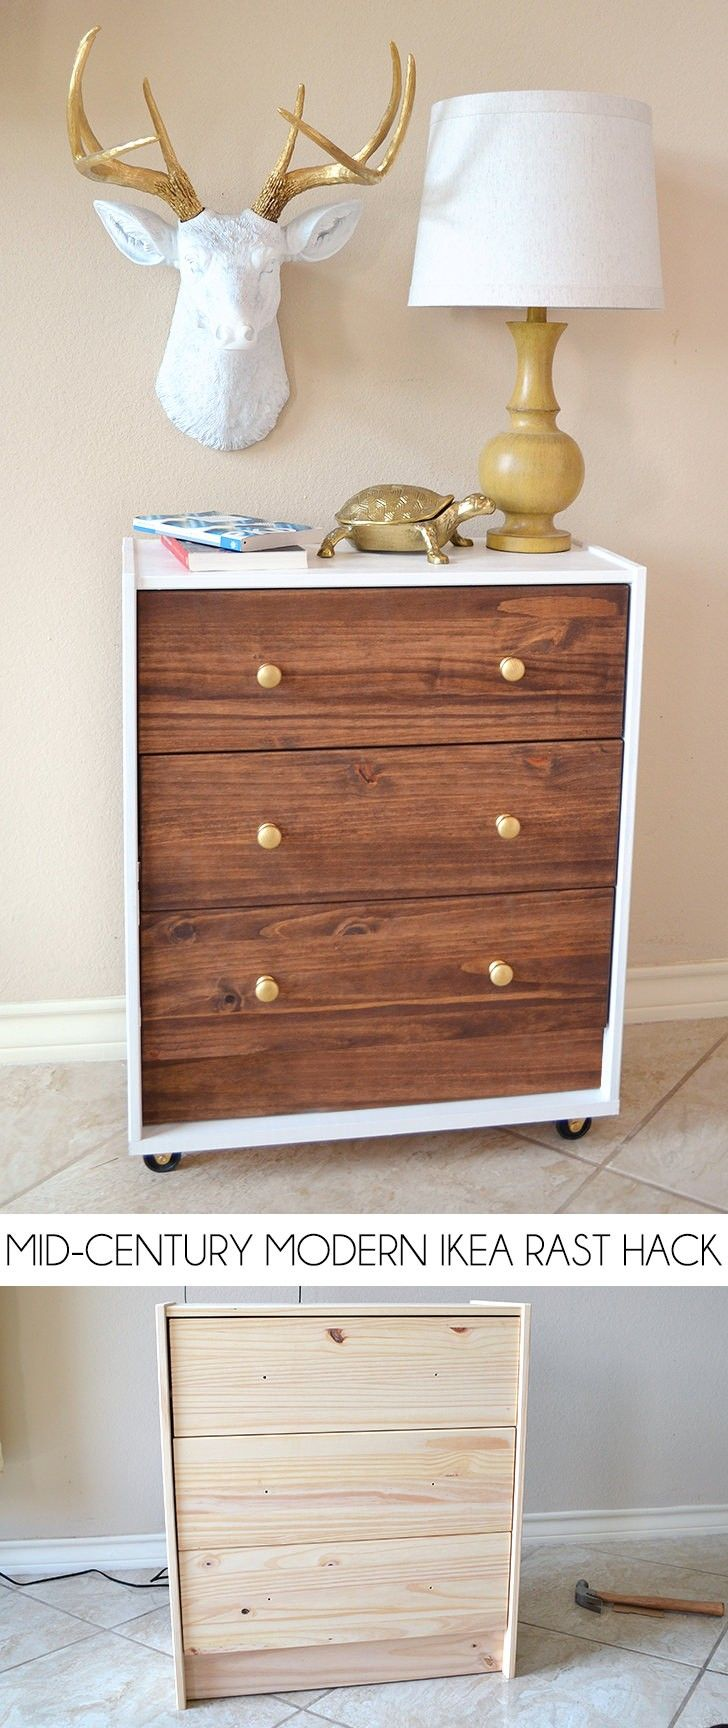 check out this ikea rast hack into a mid century modern inspired dream nightstand check beautiful diy ikea